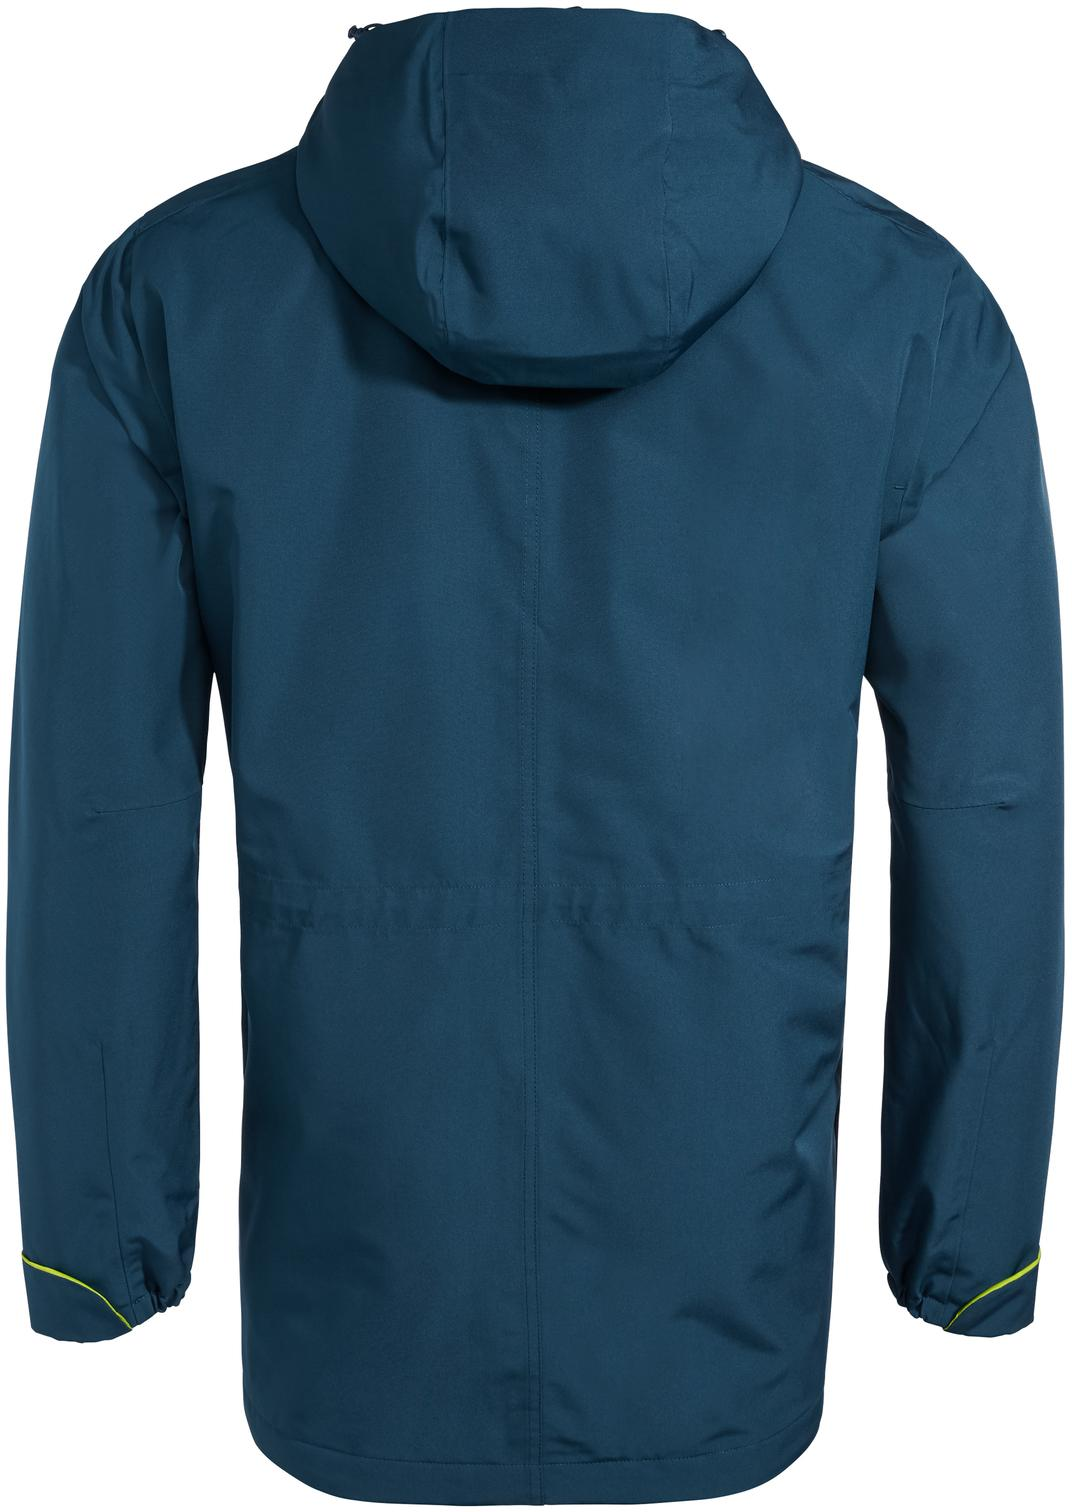 M's Cyclist padded Parka